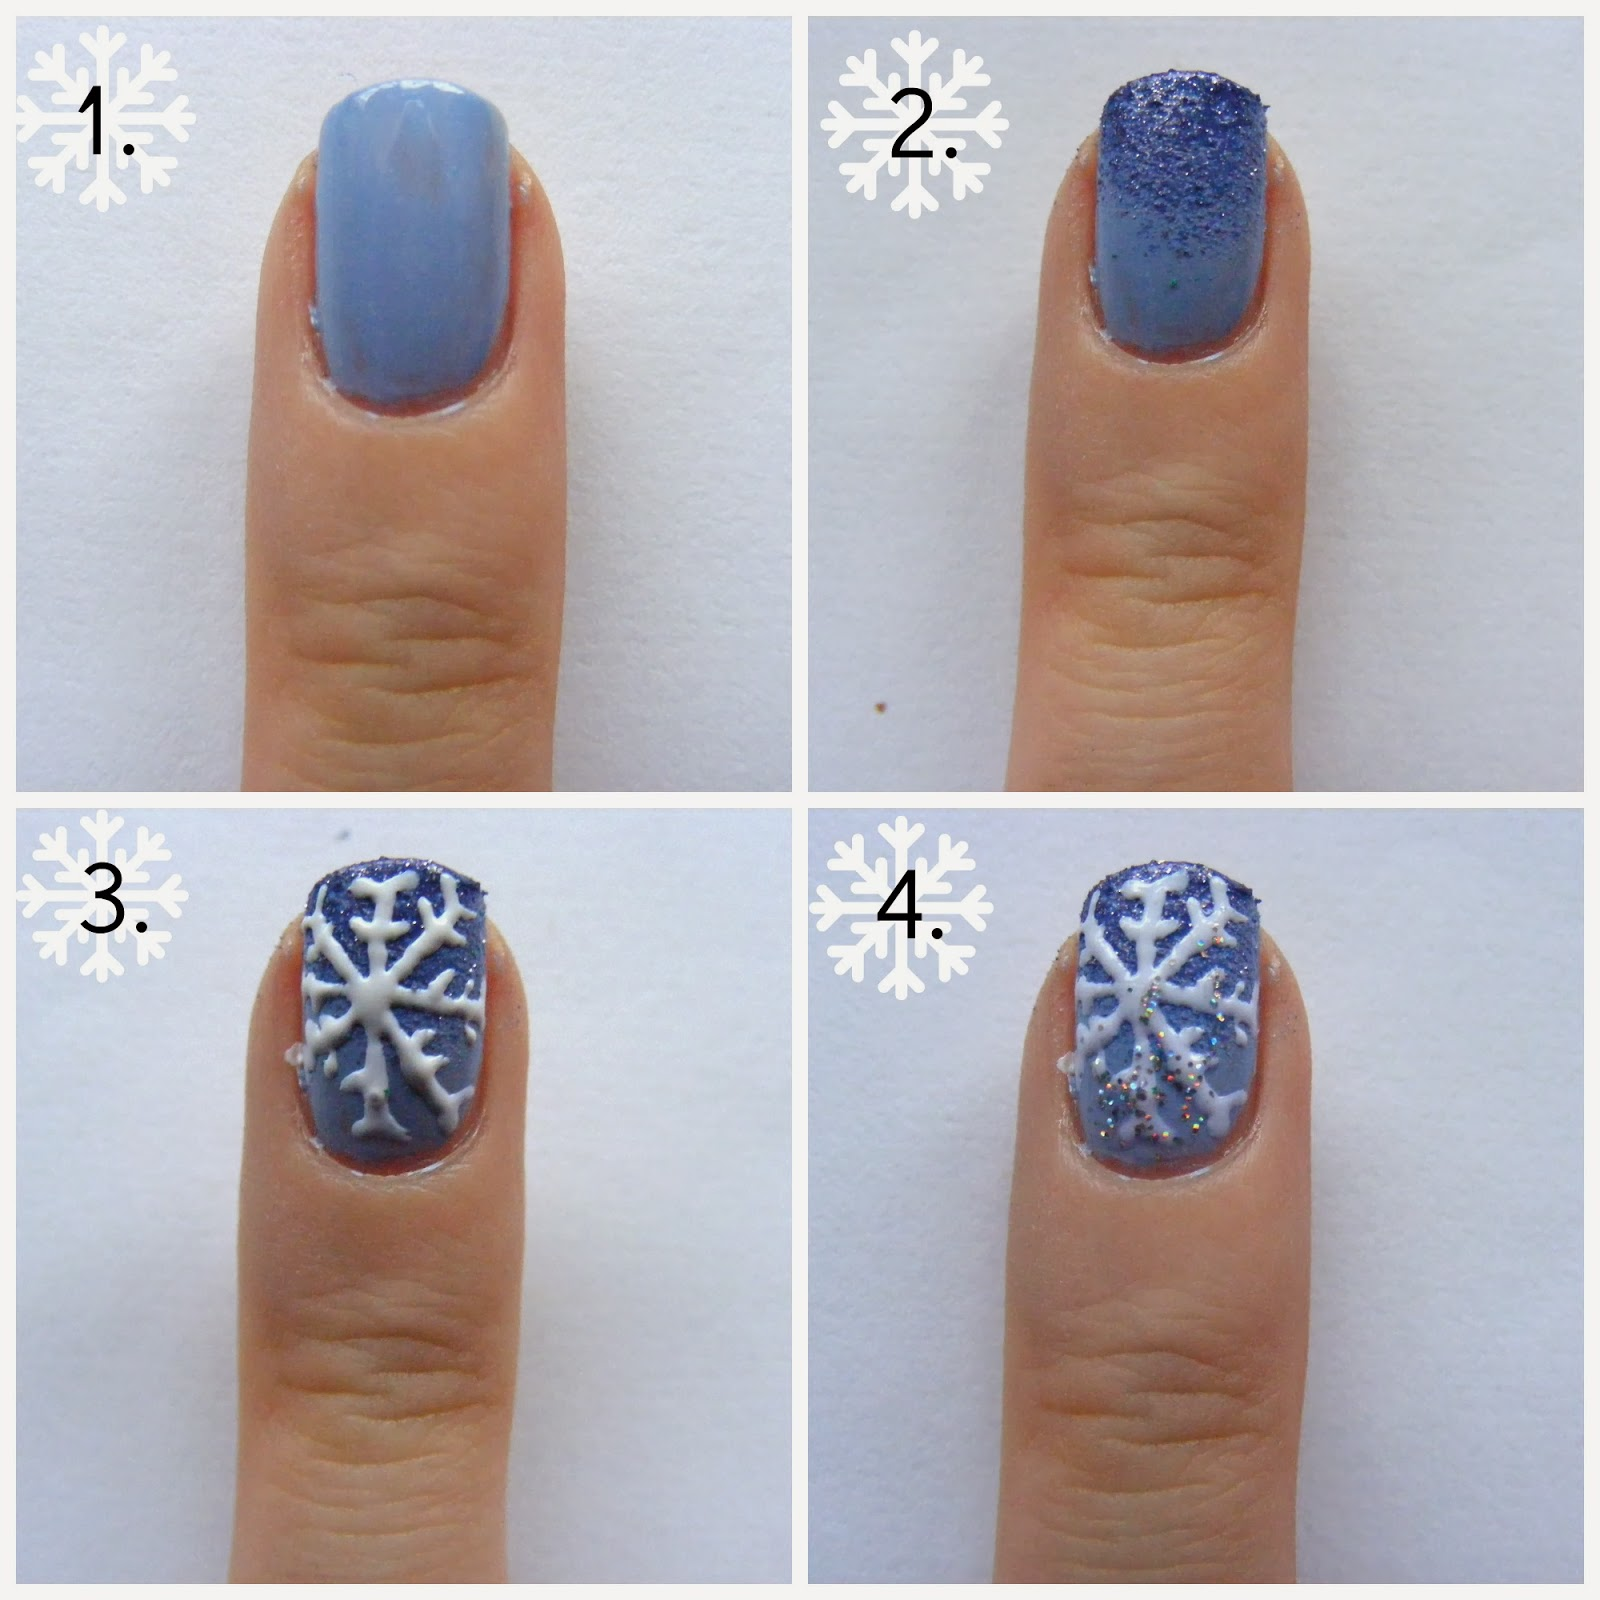 Christmas nails snowflake nail art tutorial oh hey there rachel tutorial 1 paint your nails with two coats of sky blue nail polish prinsesfo Image collections